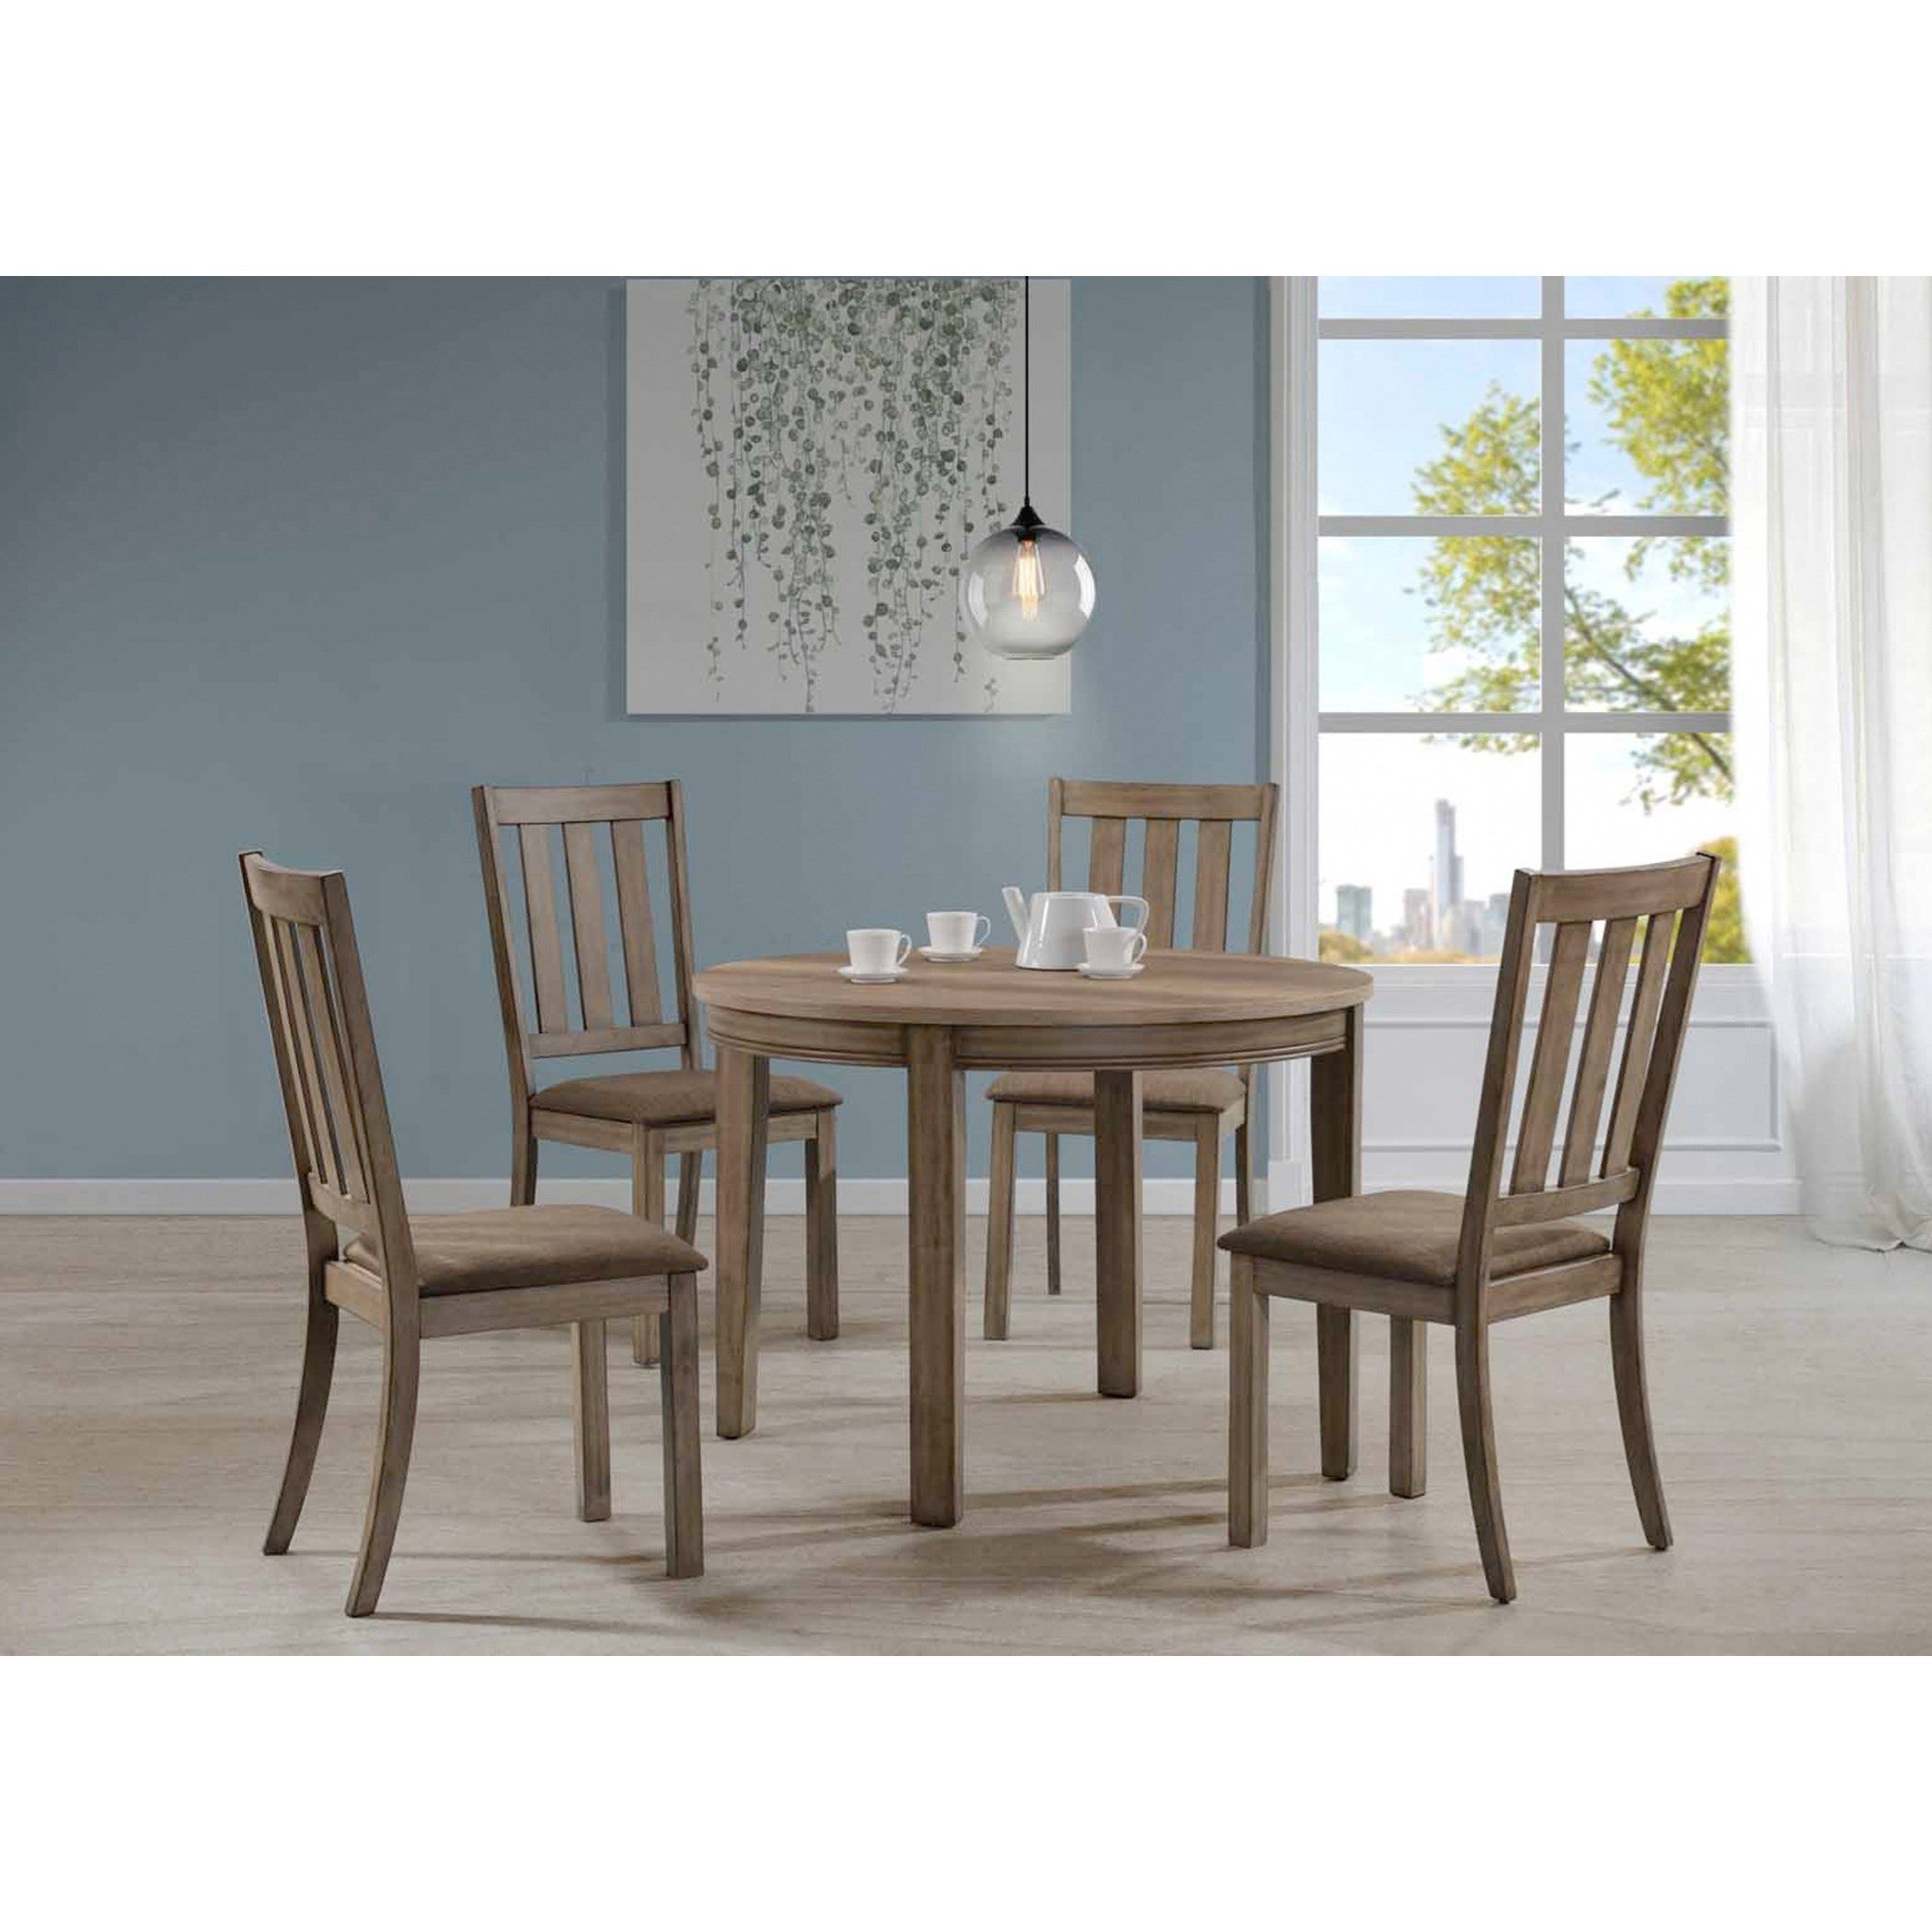 Liberty Furniture Sun Valley 5 Piece Round Table Set - Item Number: 439-DR-5ROS